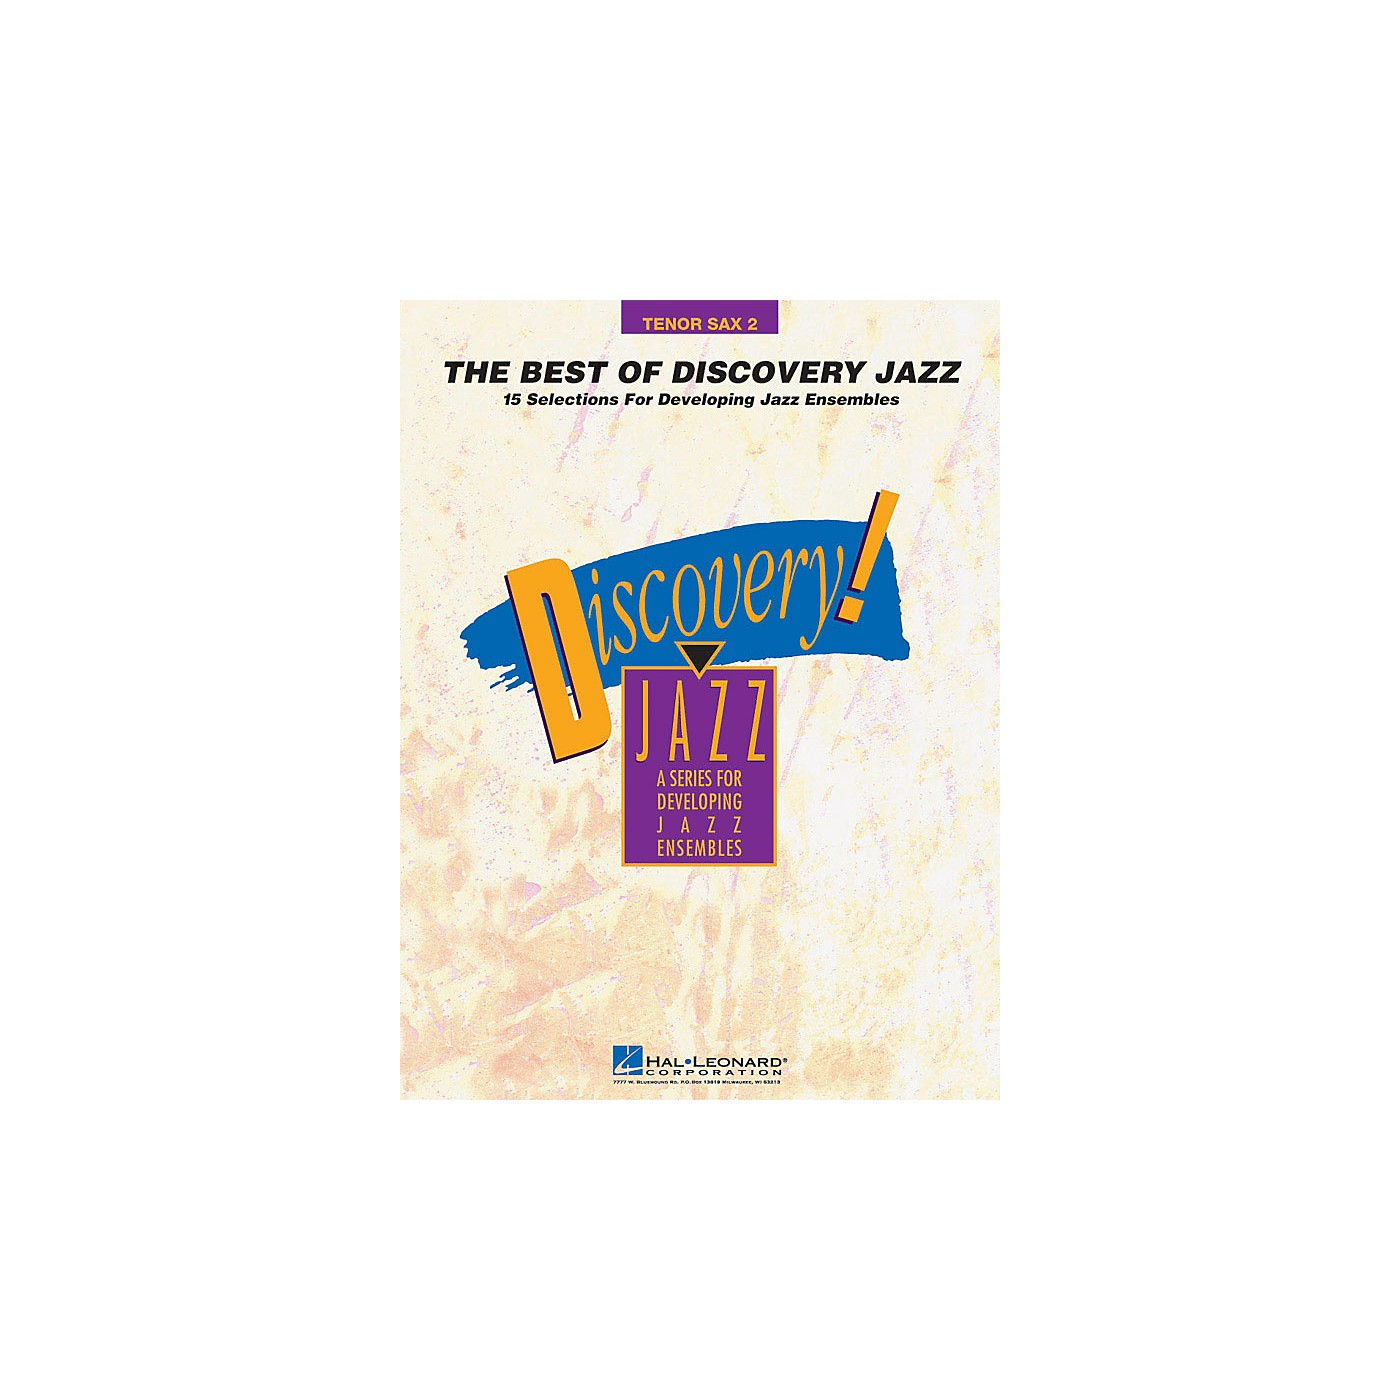 Hal Leonard The Best of Discovery Jazz (Tenor Sax 2) Jazz Band Level 1-2 Composed by Various thumbnail